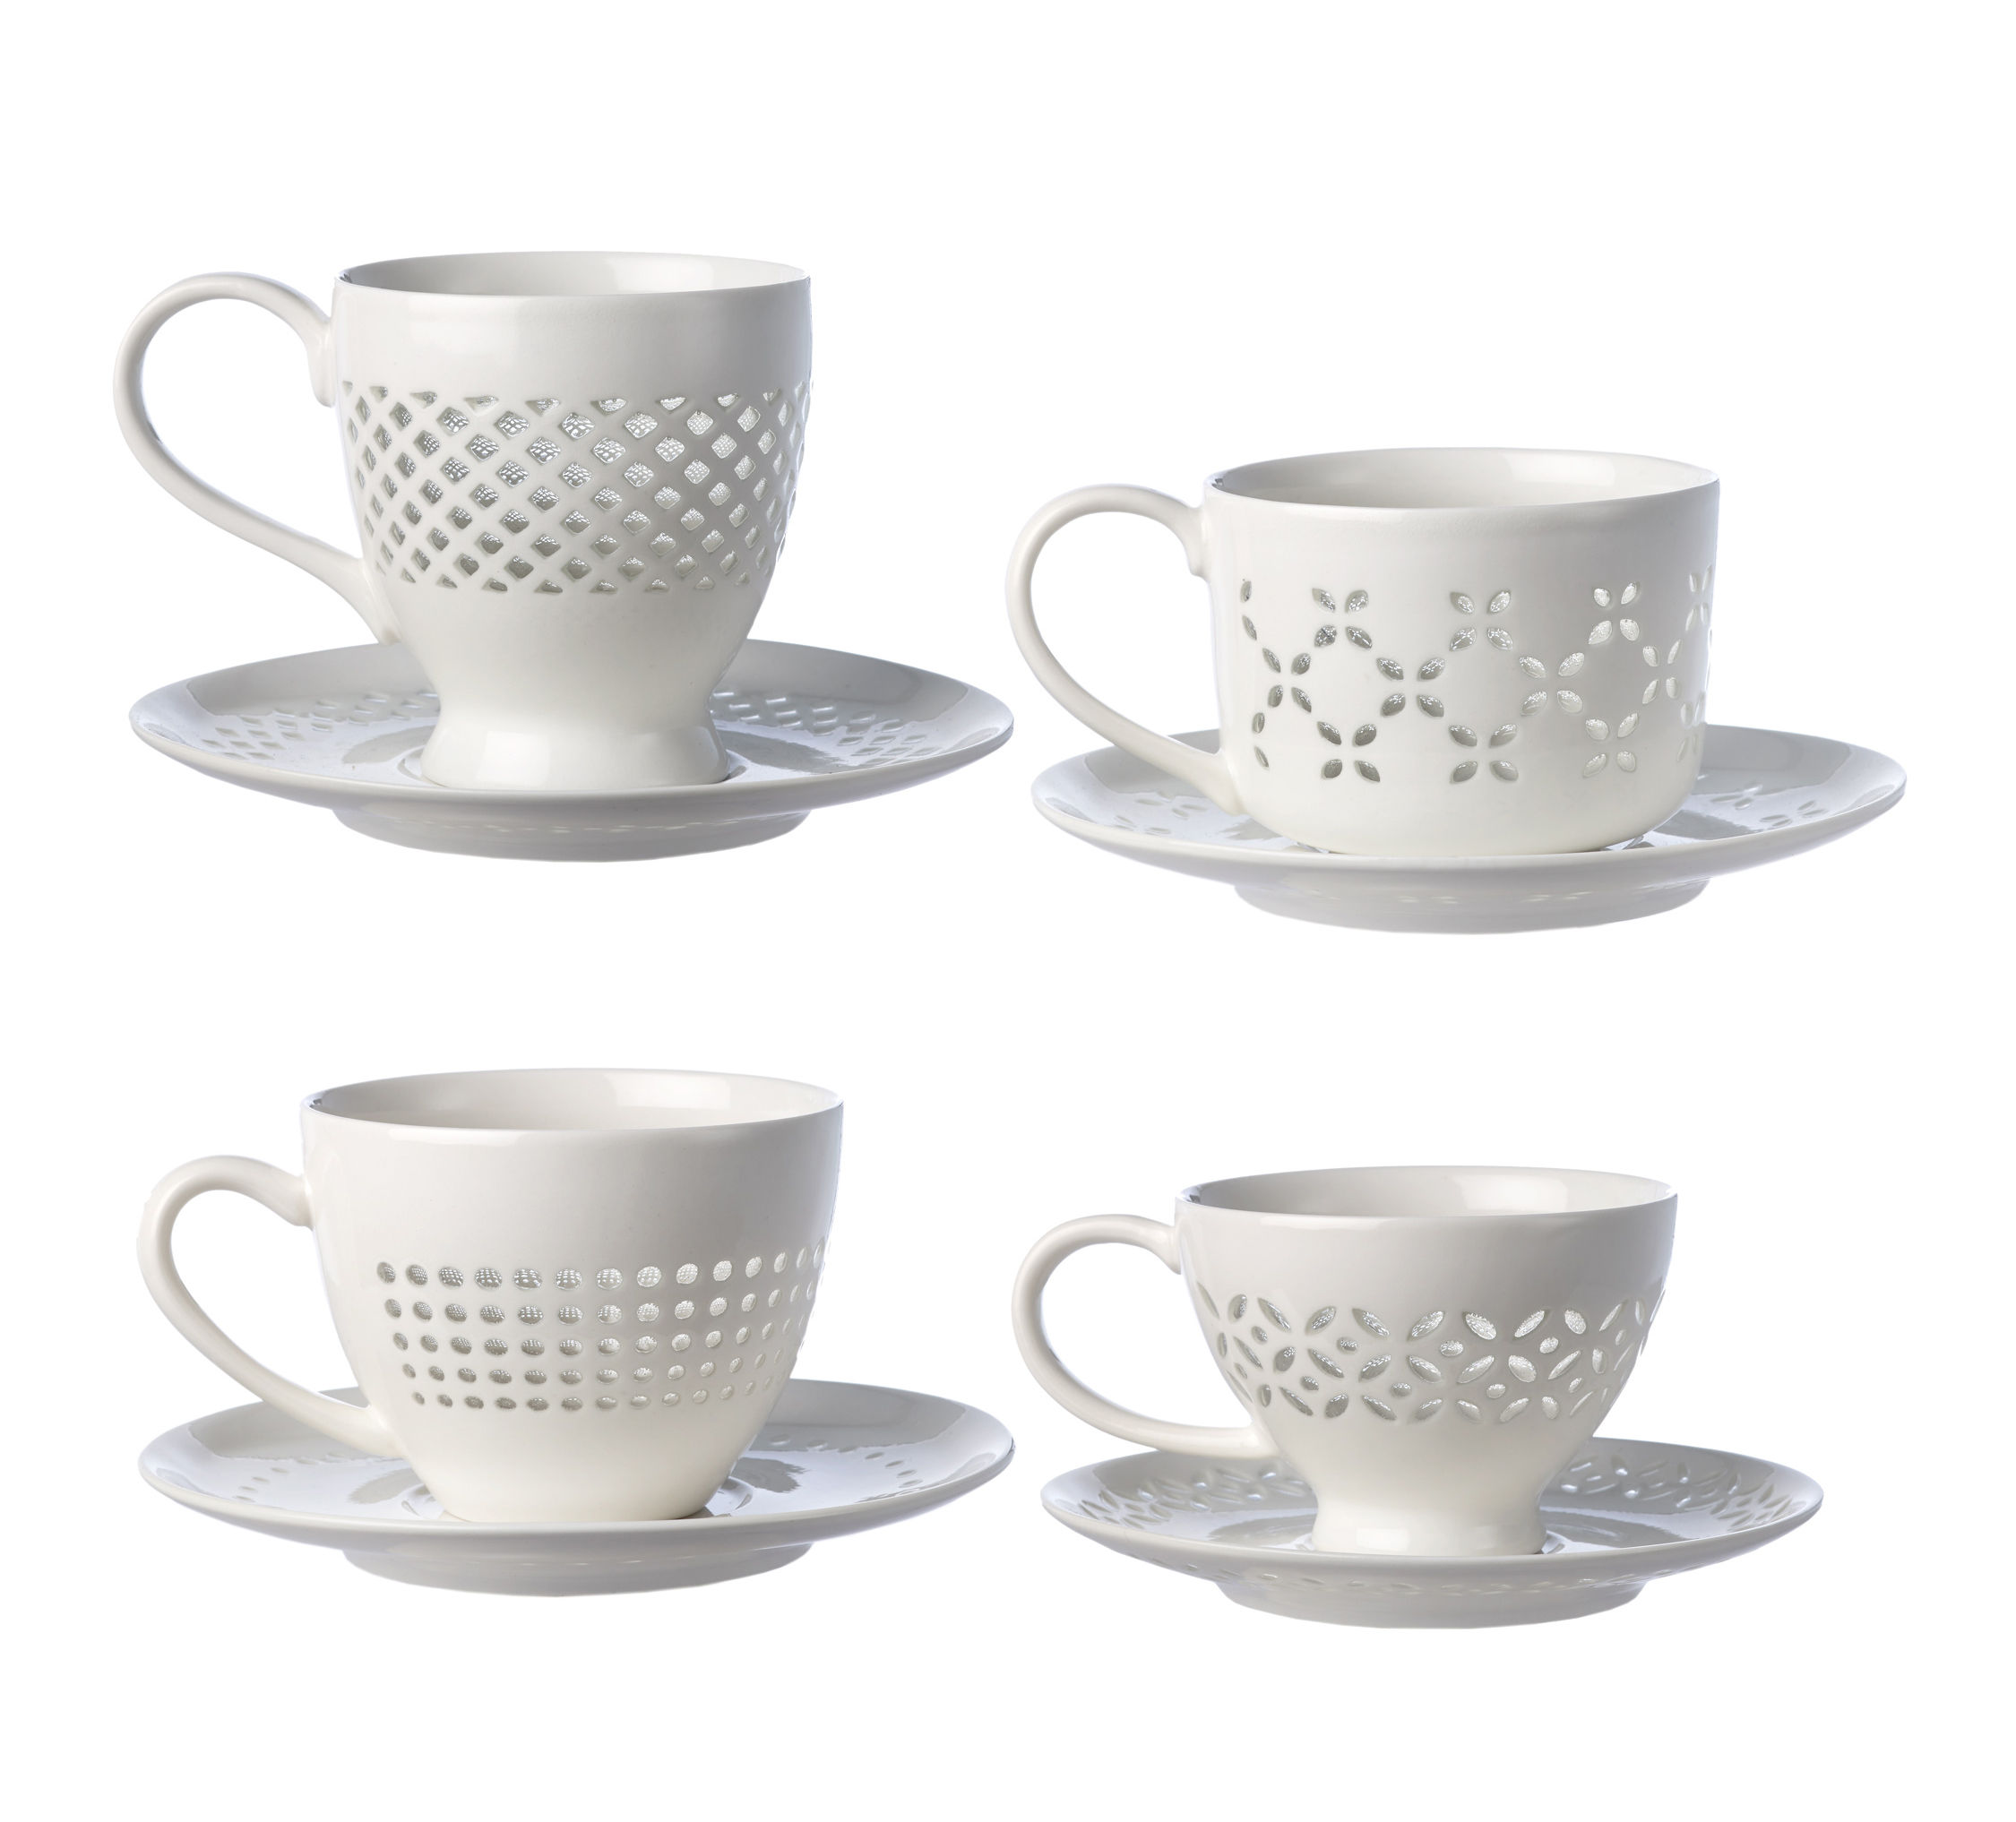 Tableware - Coffee Mugs & Tea Cups - Pierced Teacup - / Set of 4 cups and saucers by Pols Potten - White - Enamelled china